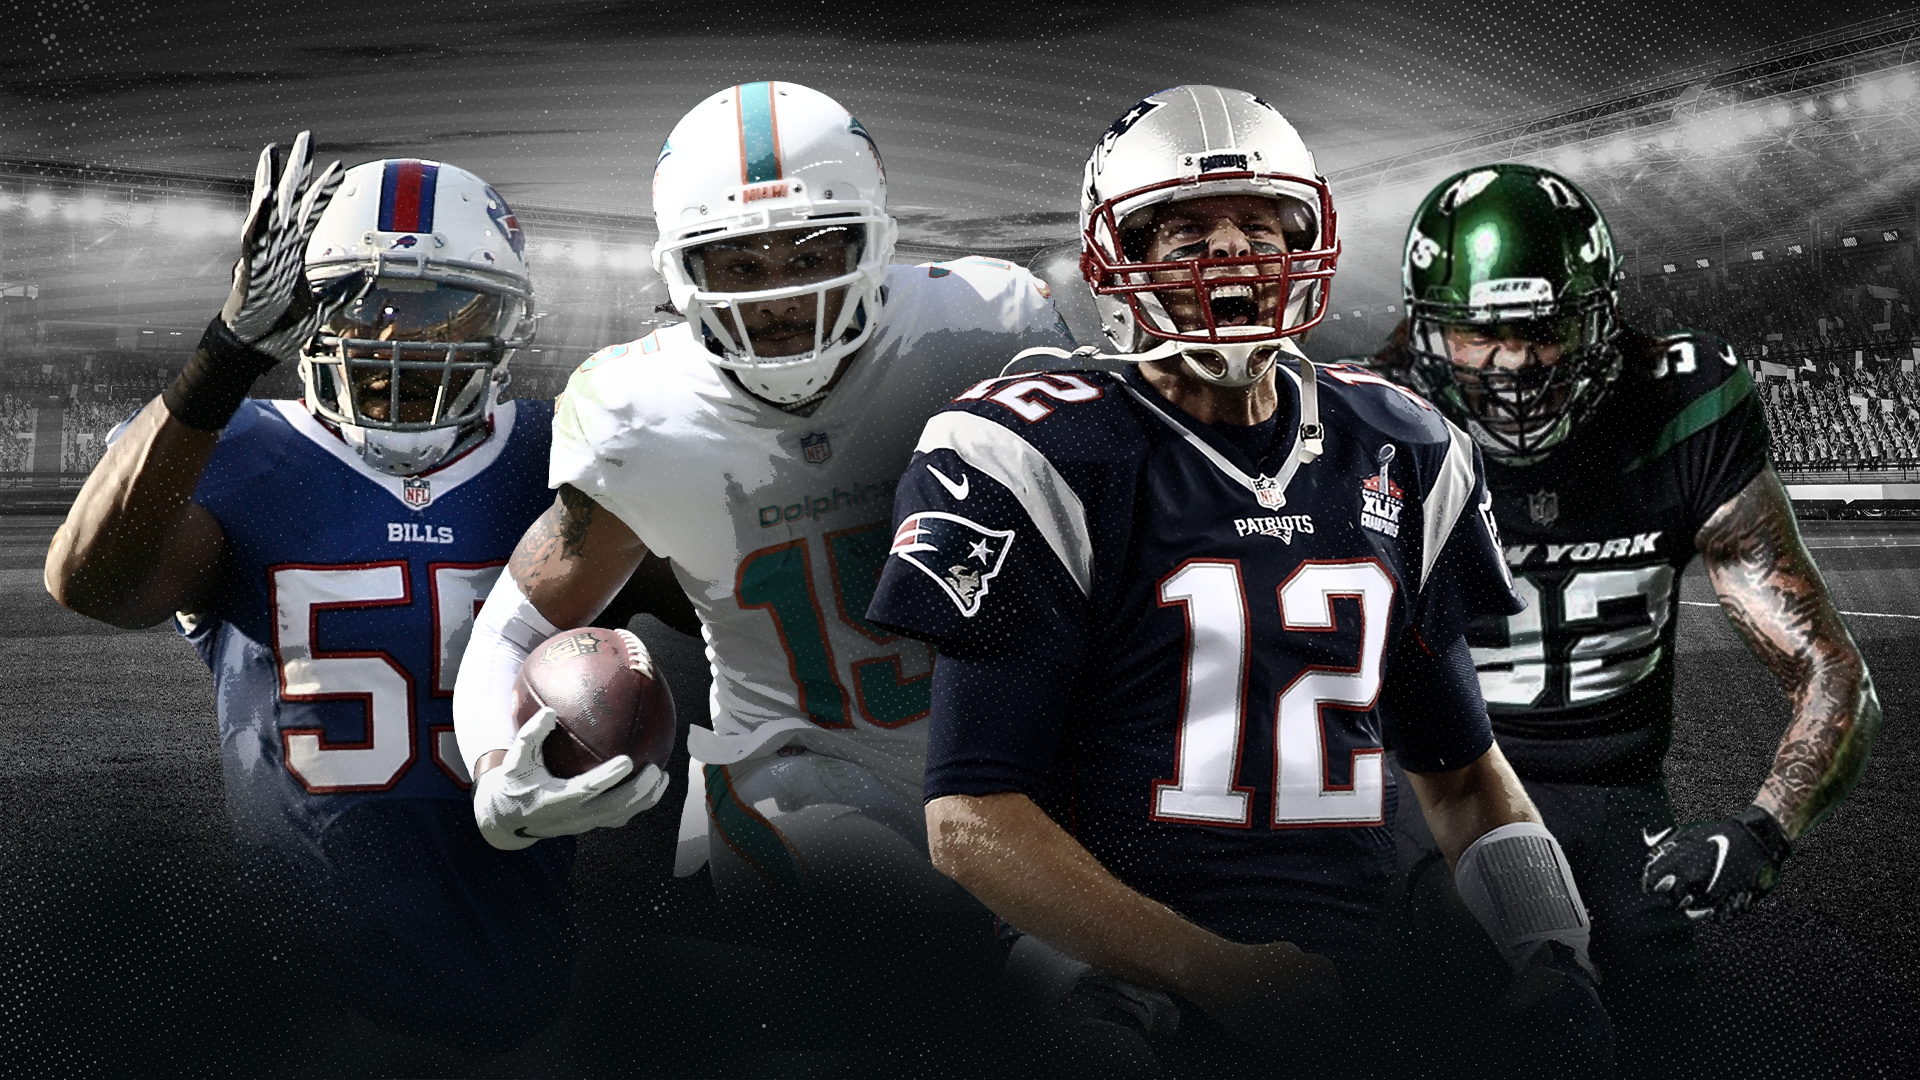 NFL predictions 2019: Patriots do their thing, Jets make